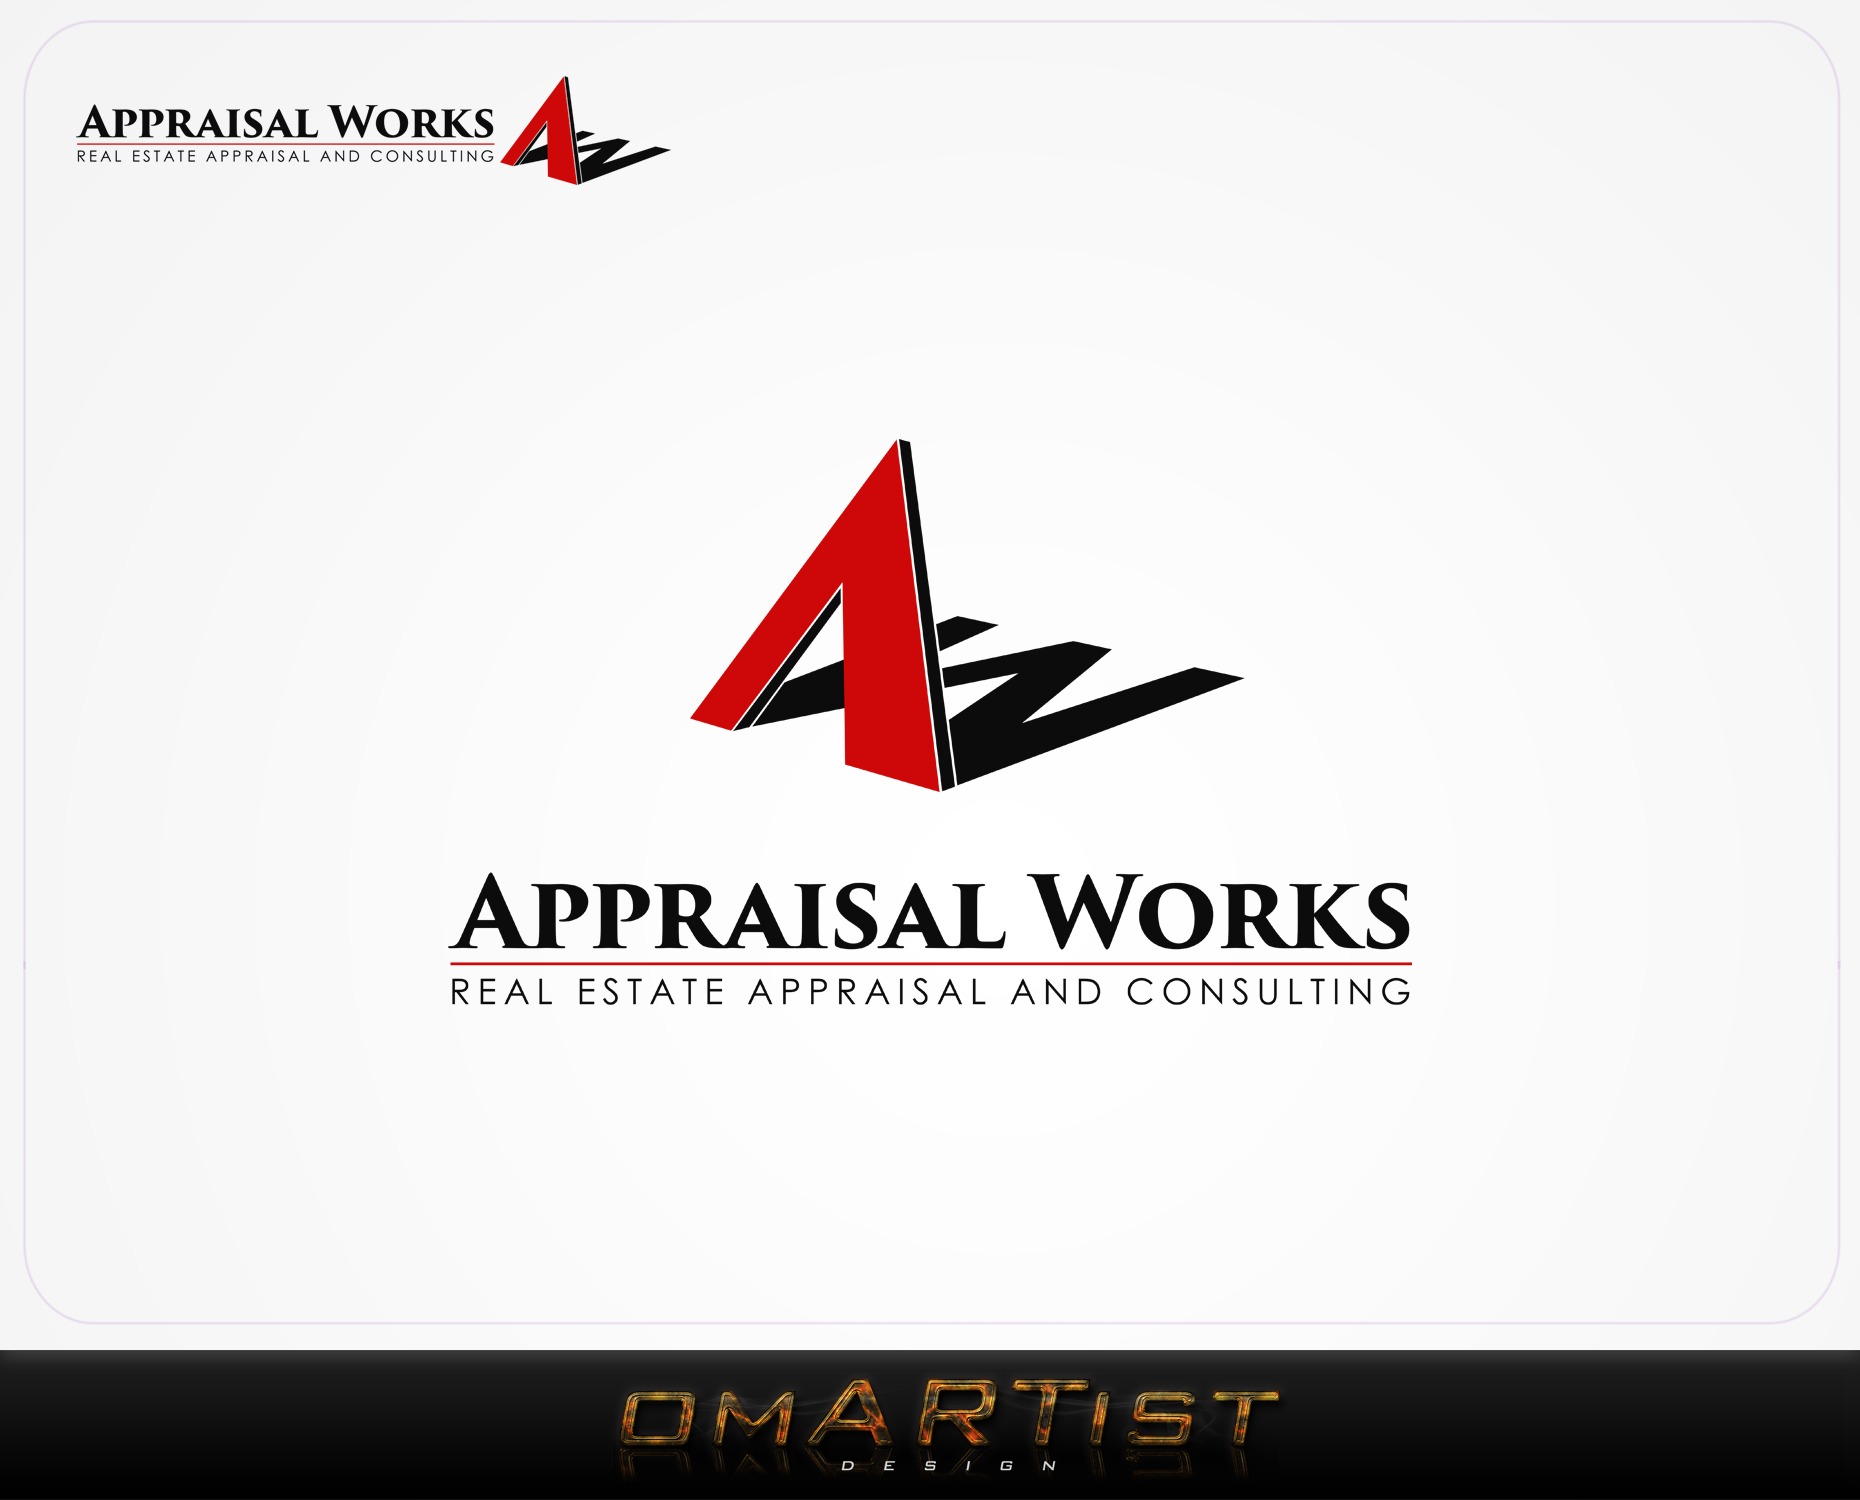 Logo Design by omARTist - Entry No. 271 in the Logo Design Contest Appraisal Works Logo Design.